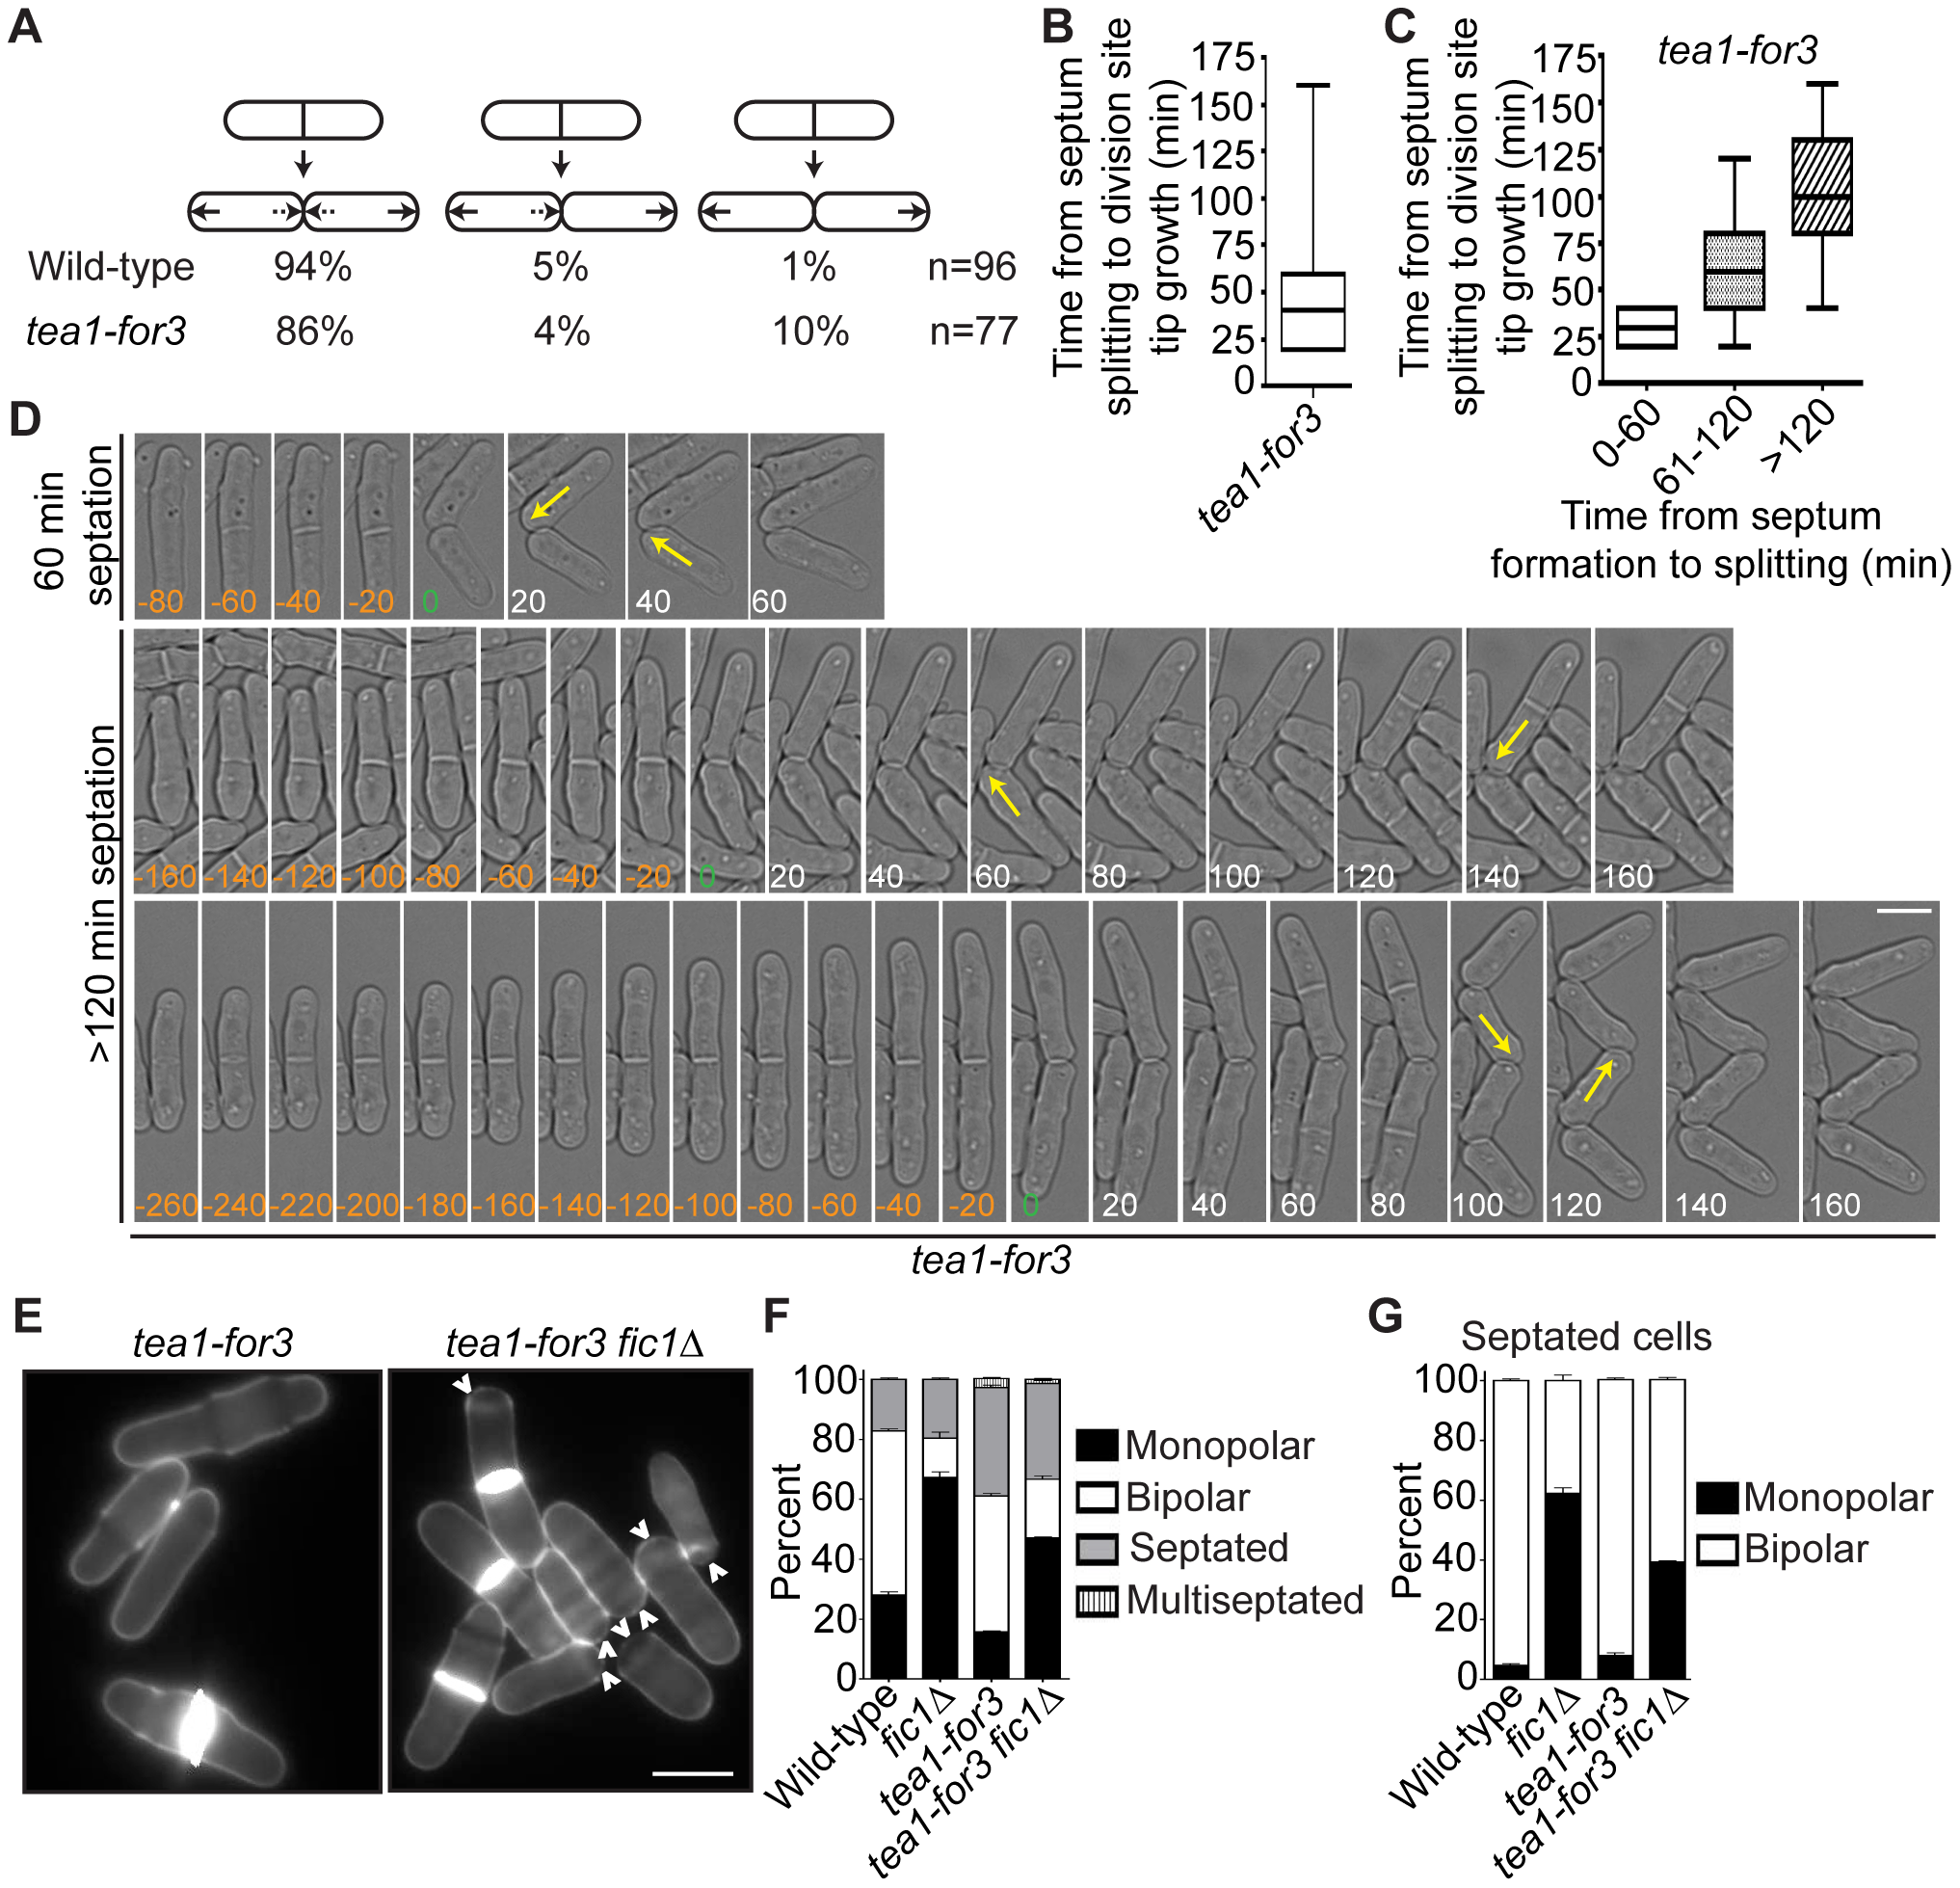 Constitutive NETO signaling does not fully rescue cytokinesis-based growth polarity defects.